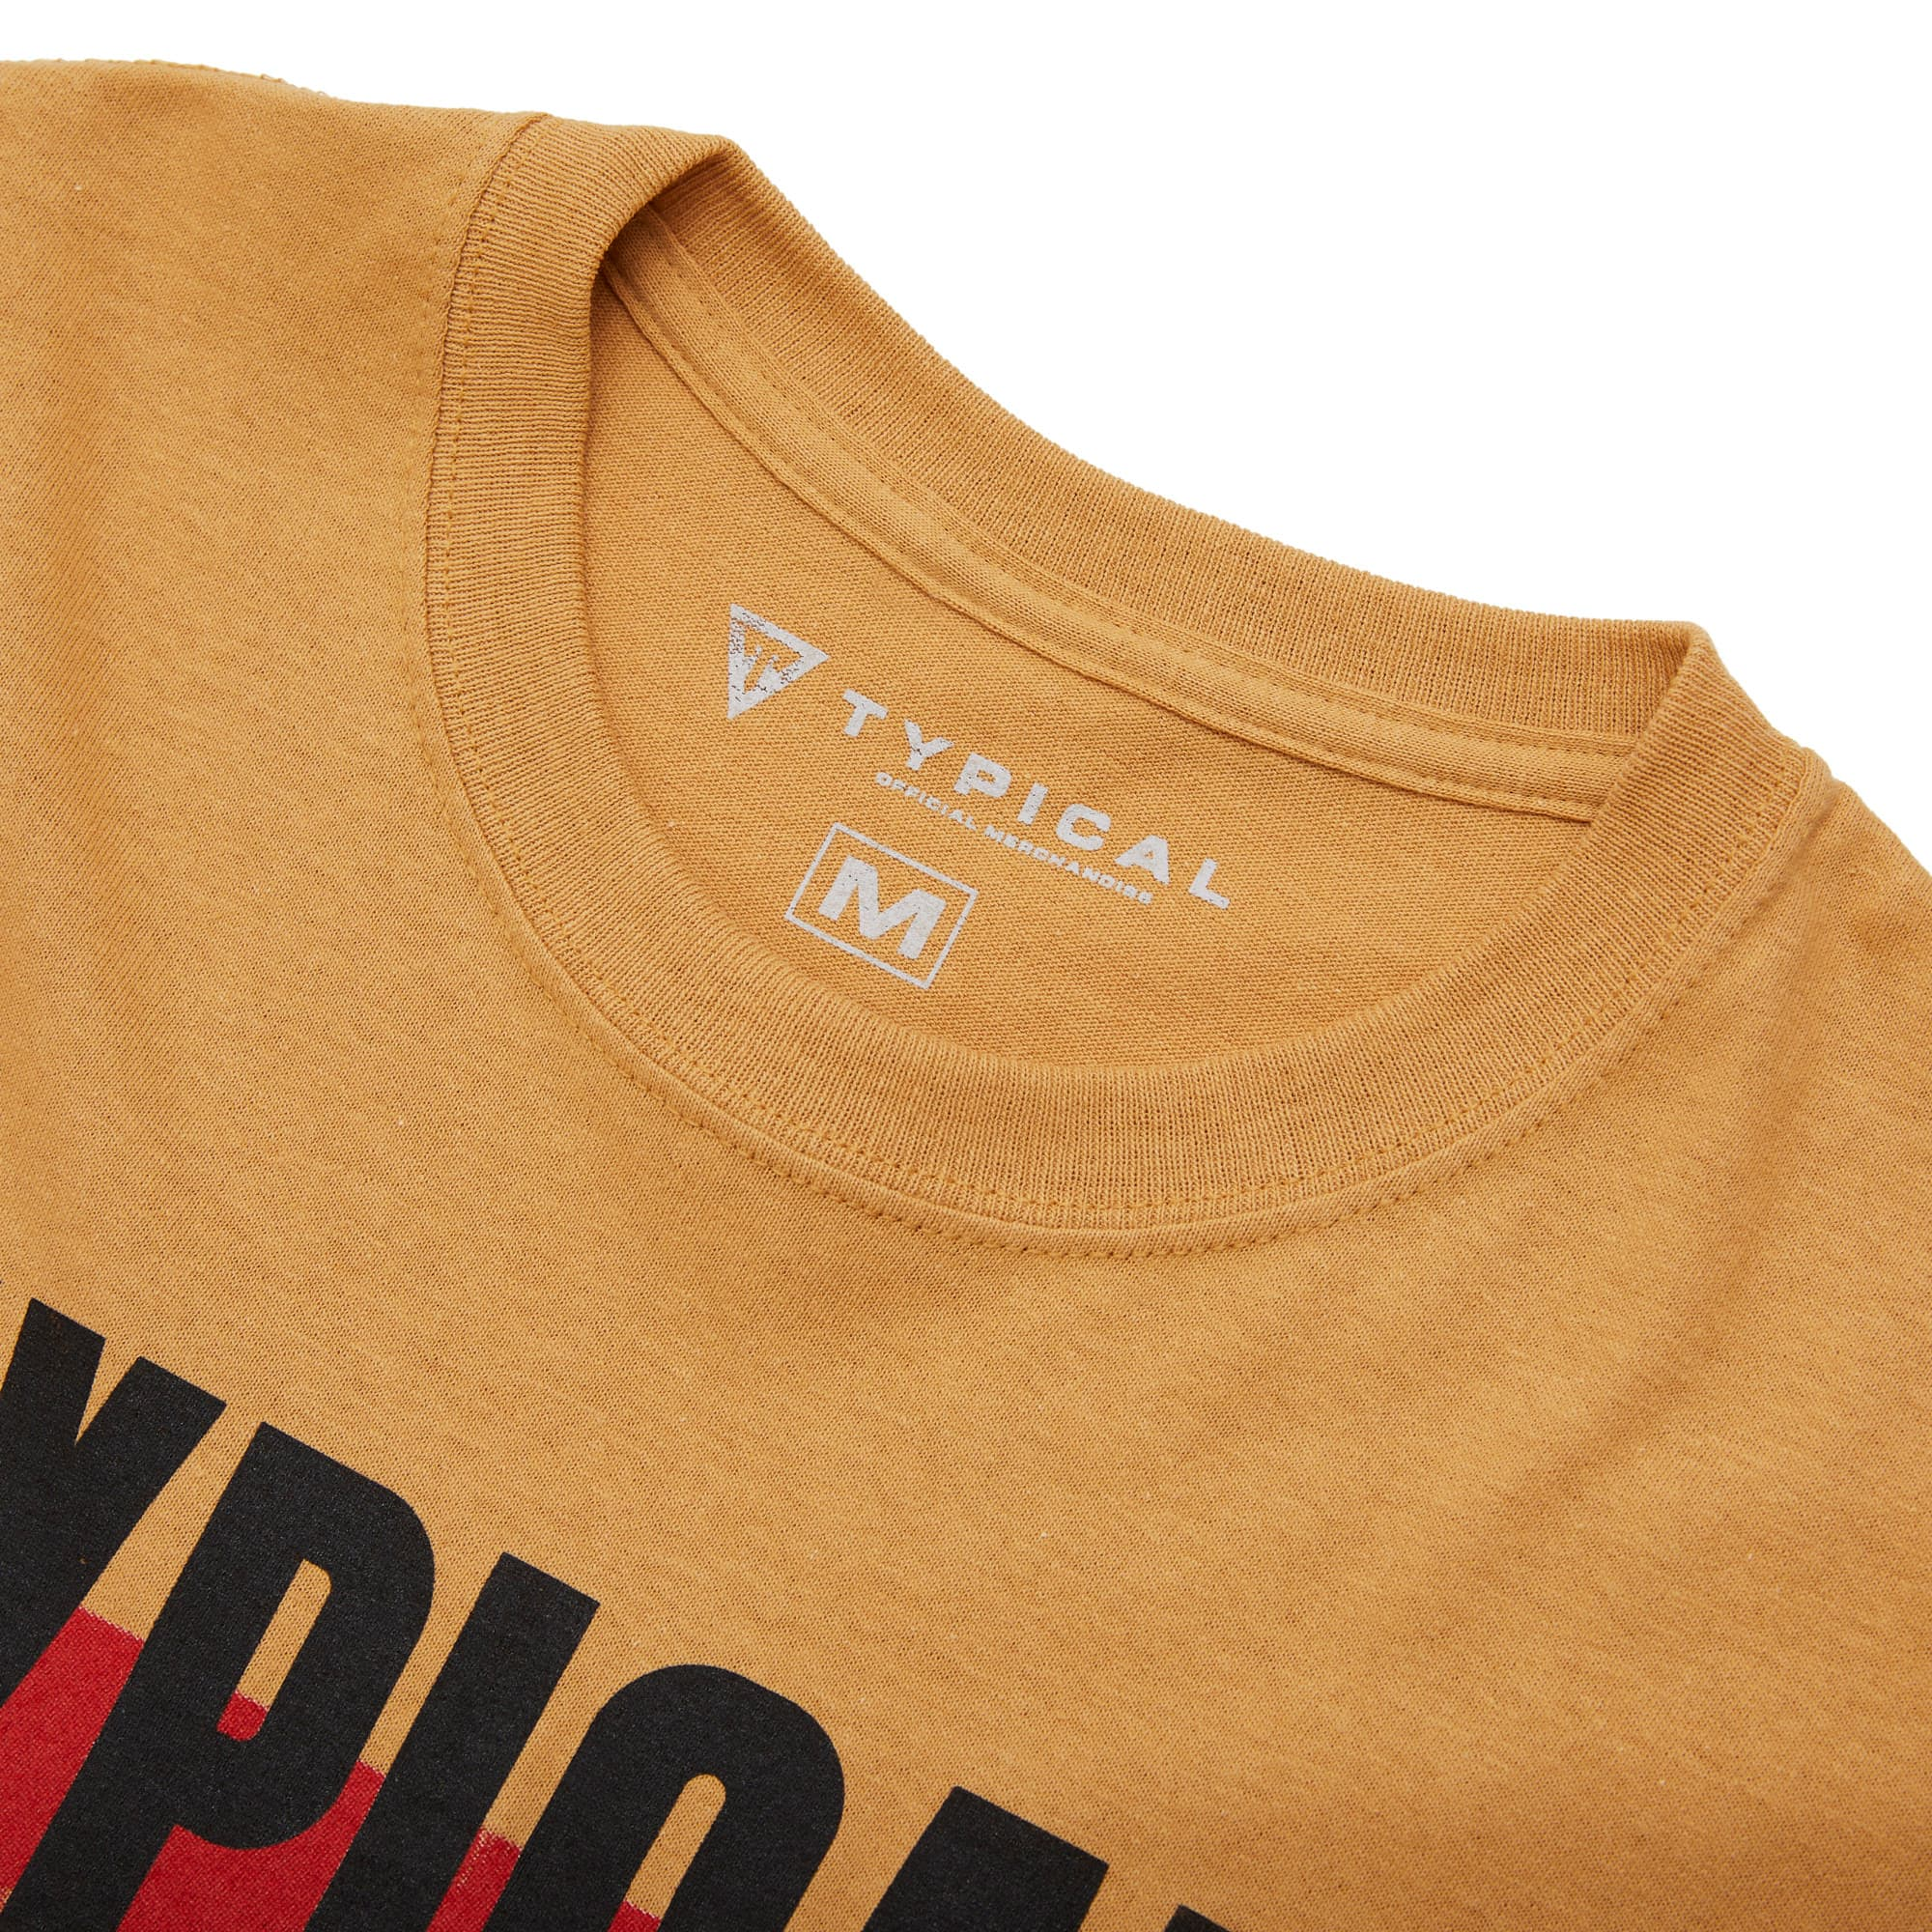 Typical Levels Tee